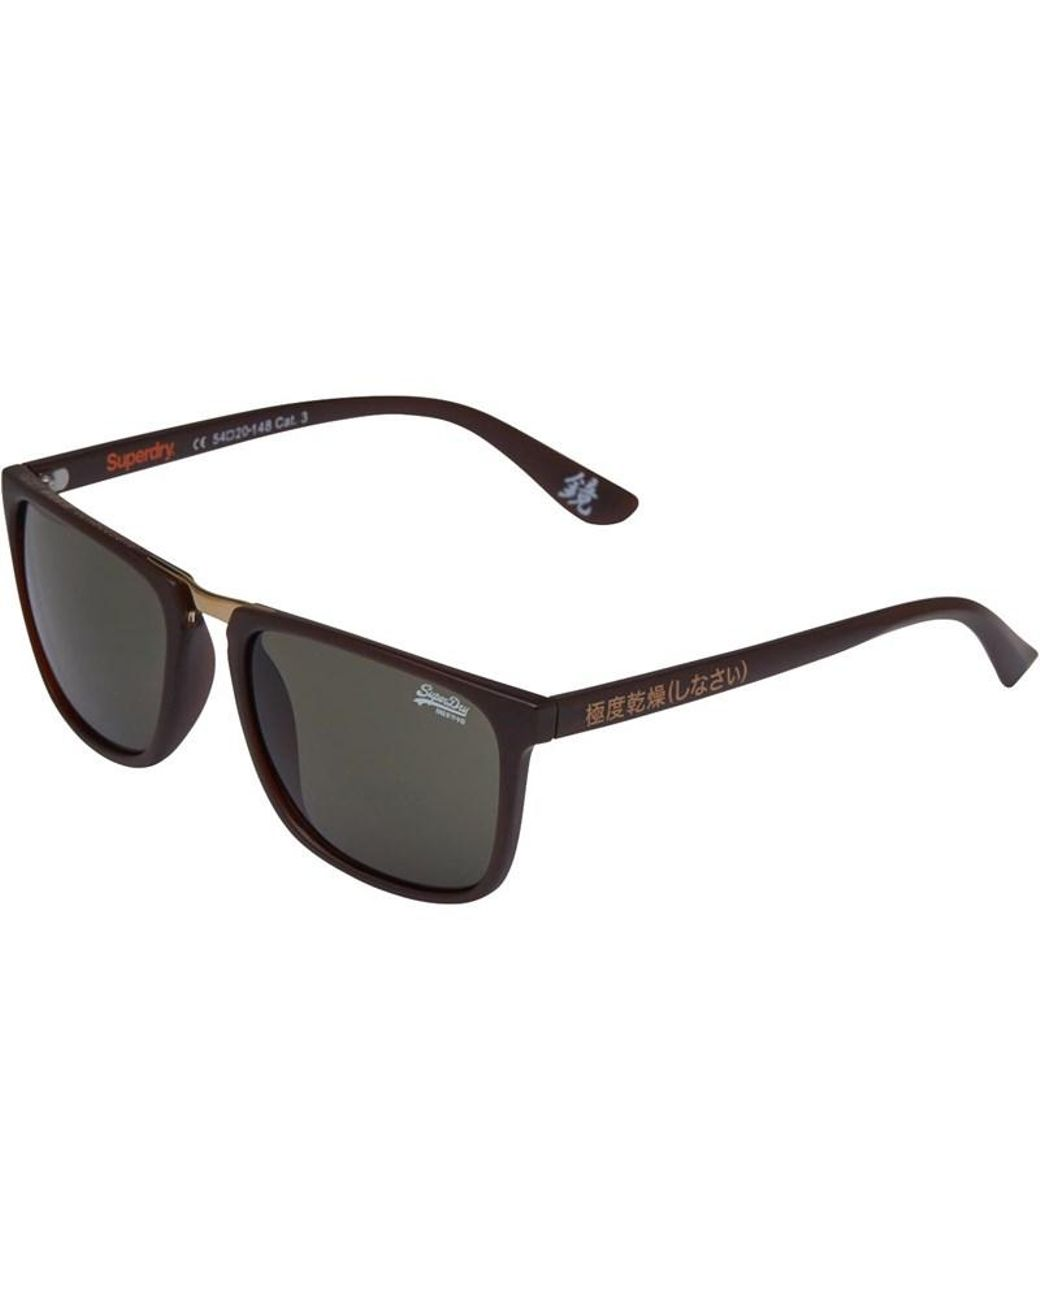 07b5f57bfa047e Superdry Aftershock Sunglasses Tort in Brown for Men - Lyst